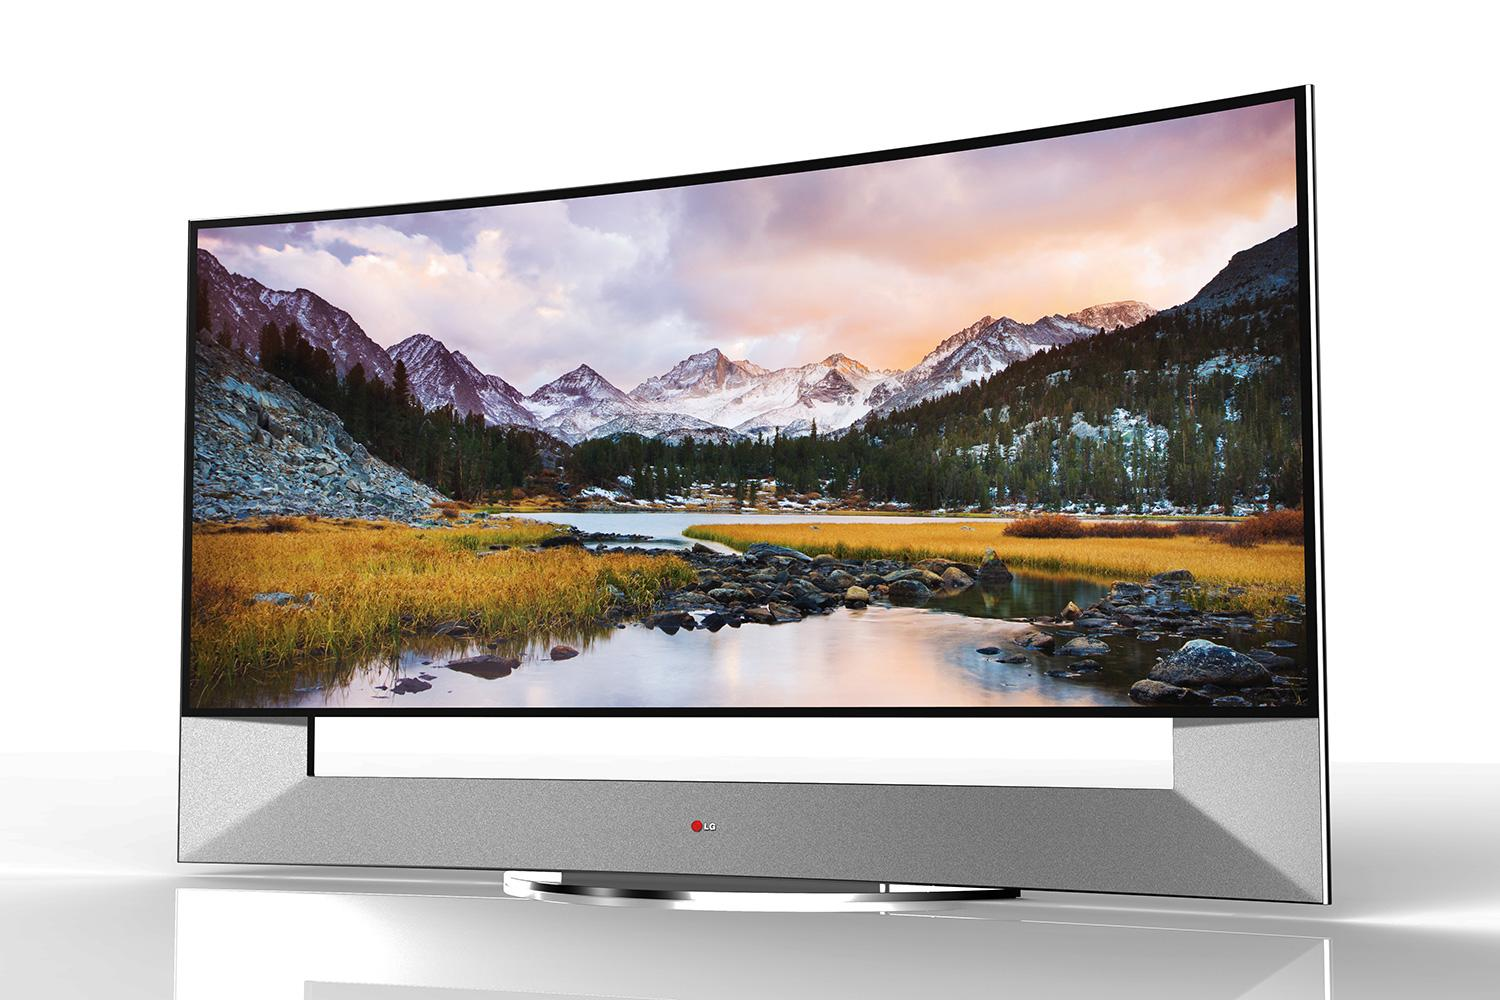 lg announces 105 inch curved 4k ultra hd tv ahead of ces. Black Bedroom Furniture Sets. Home Design Ideas